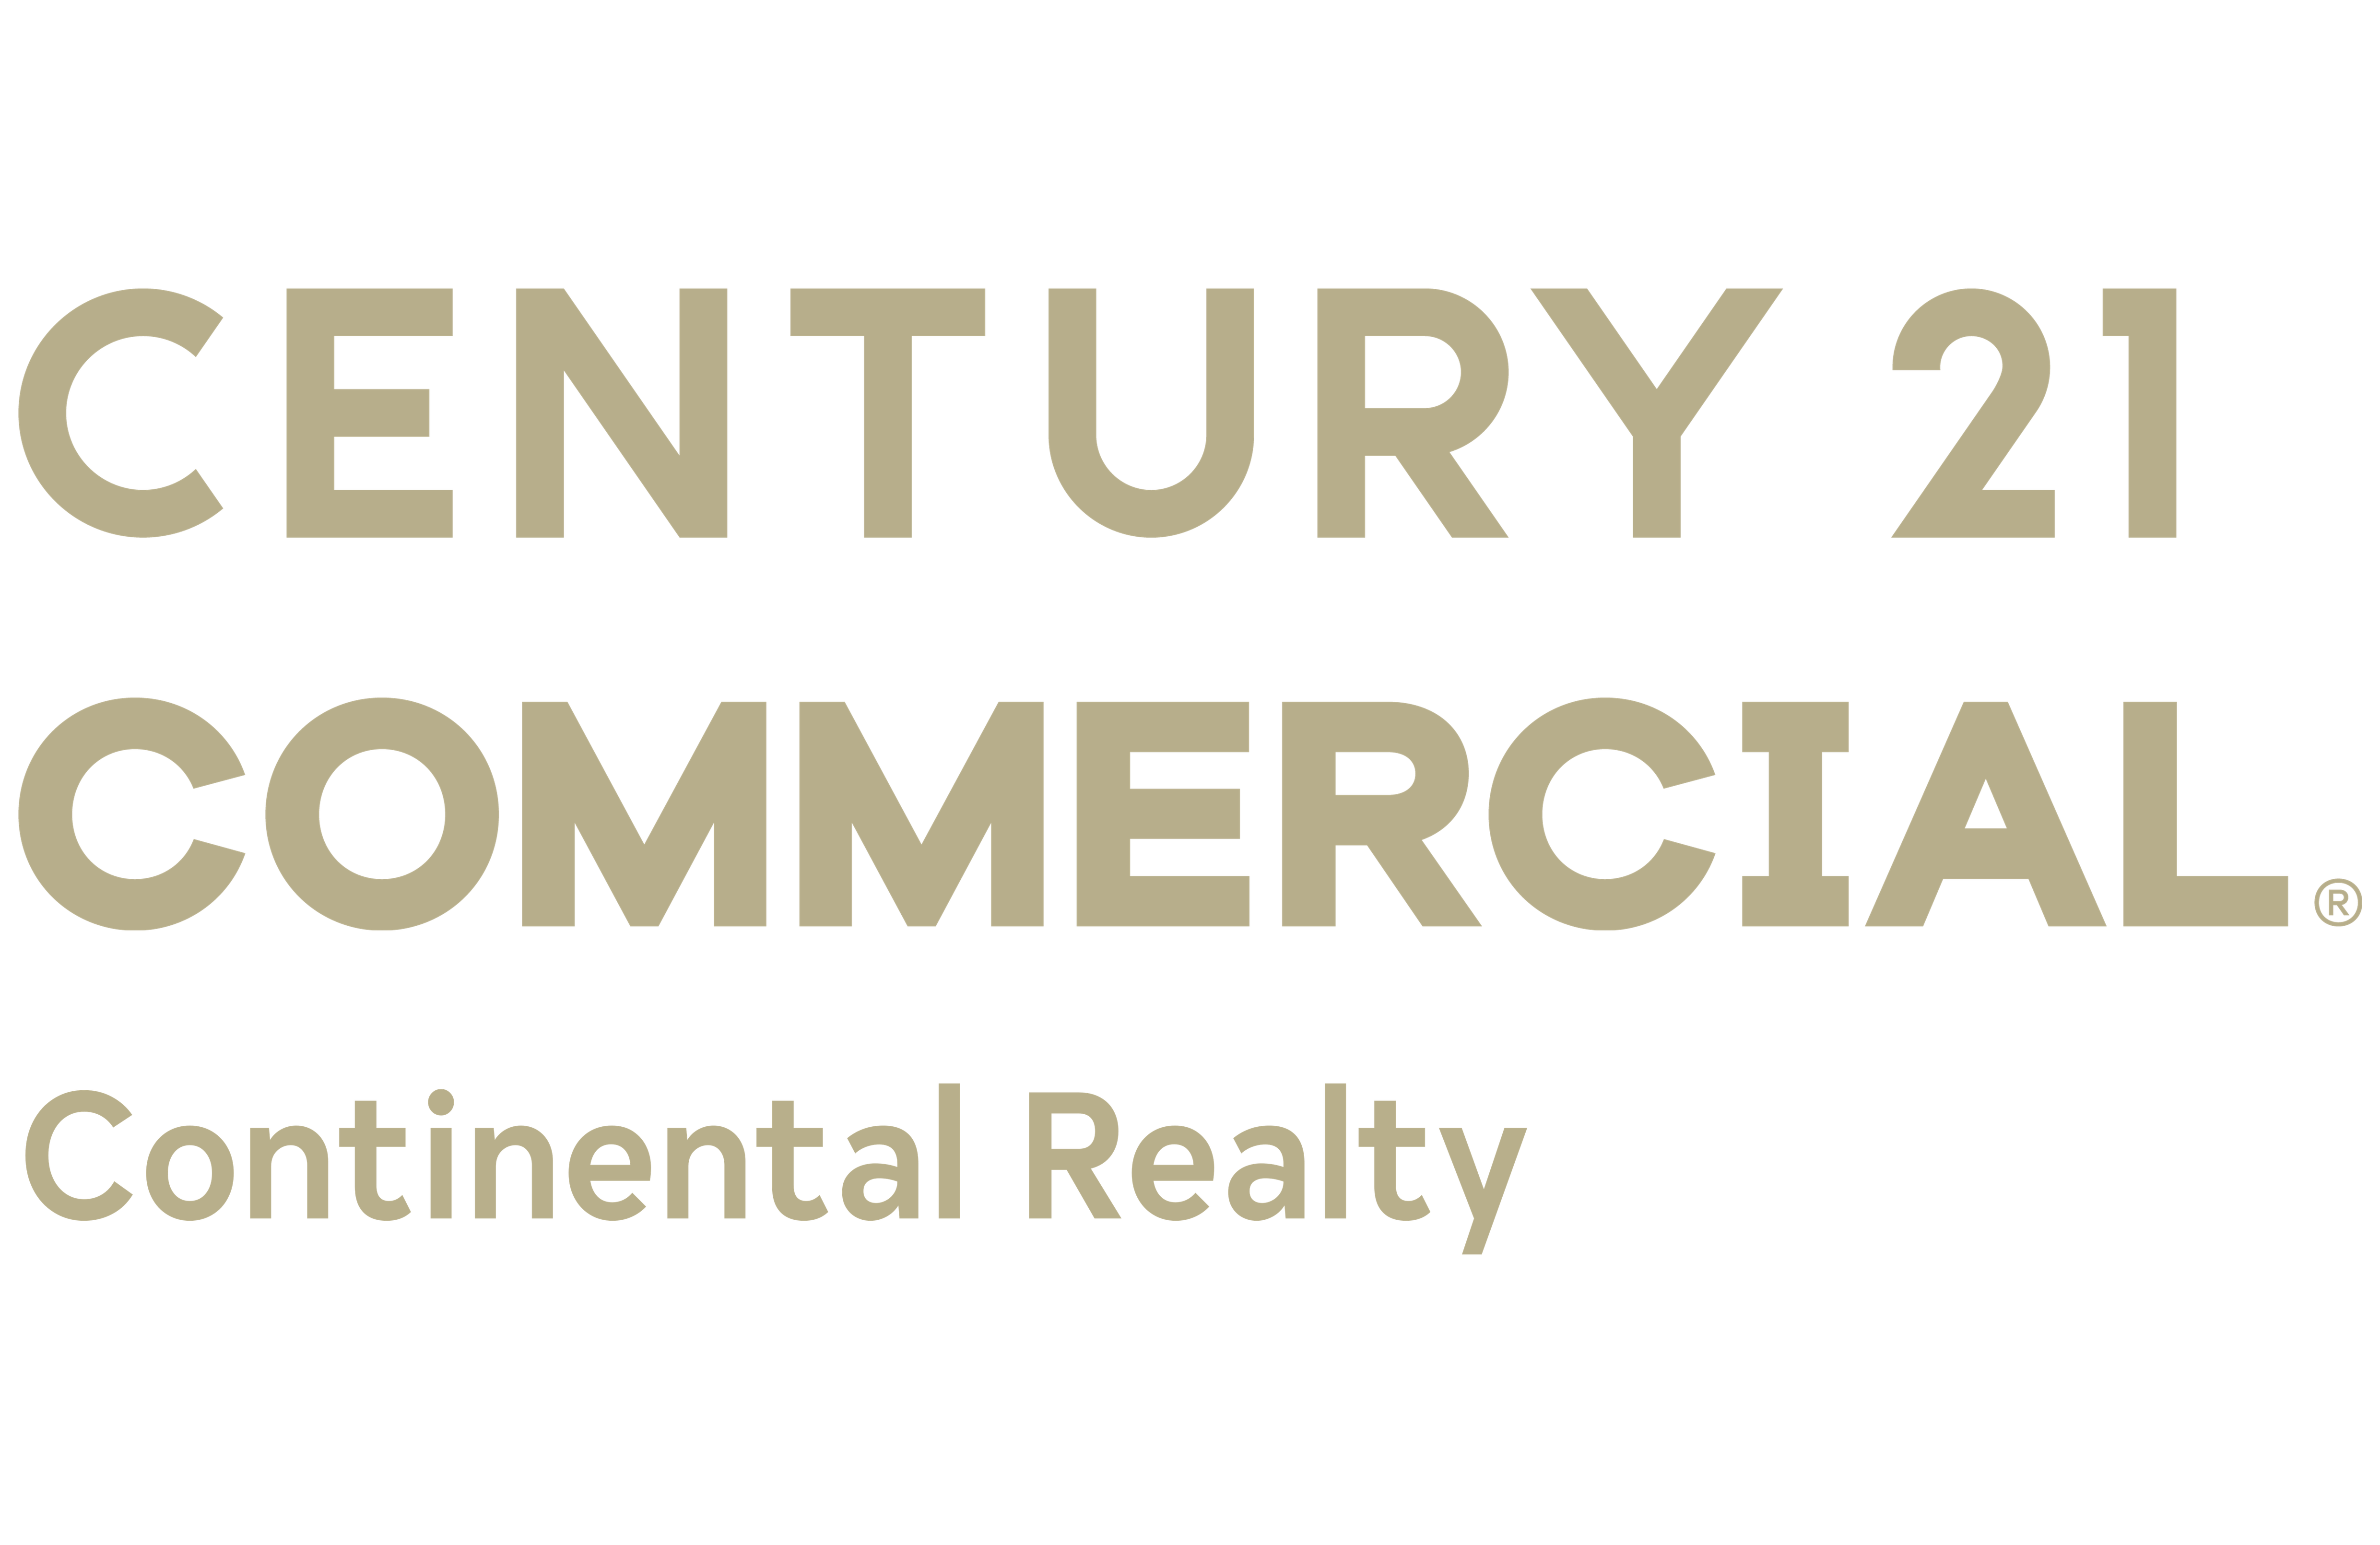 CENTURY 21 Continental Realty